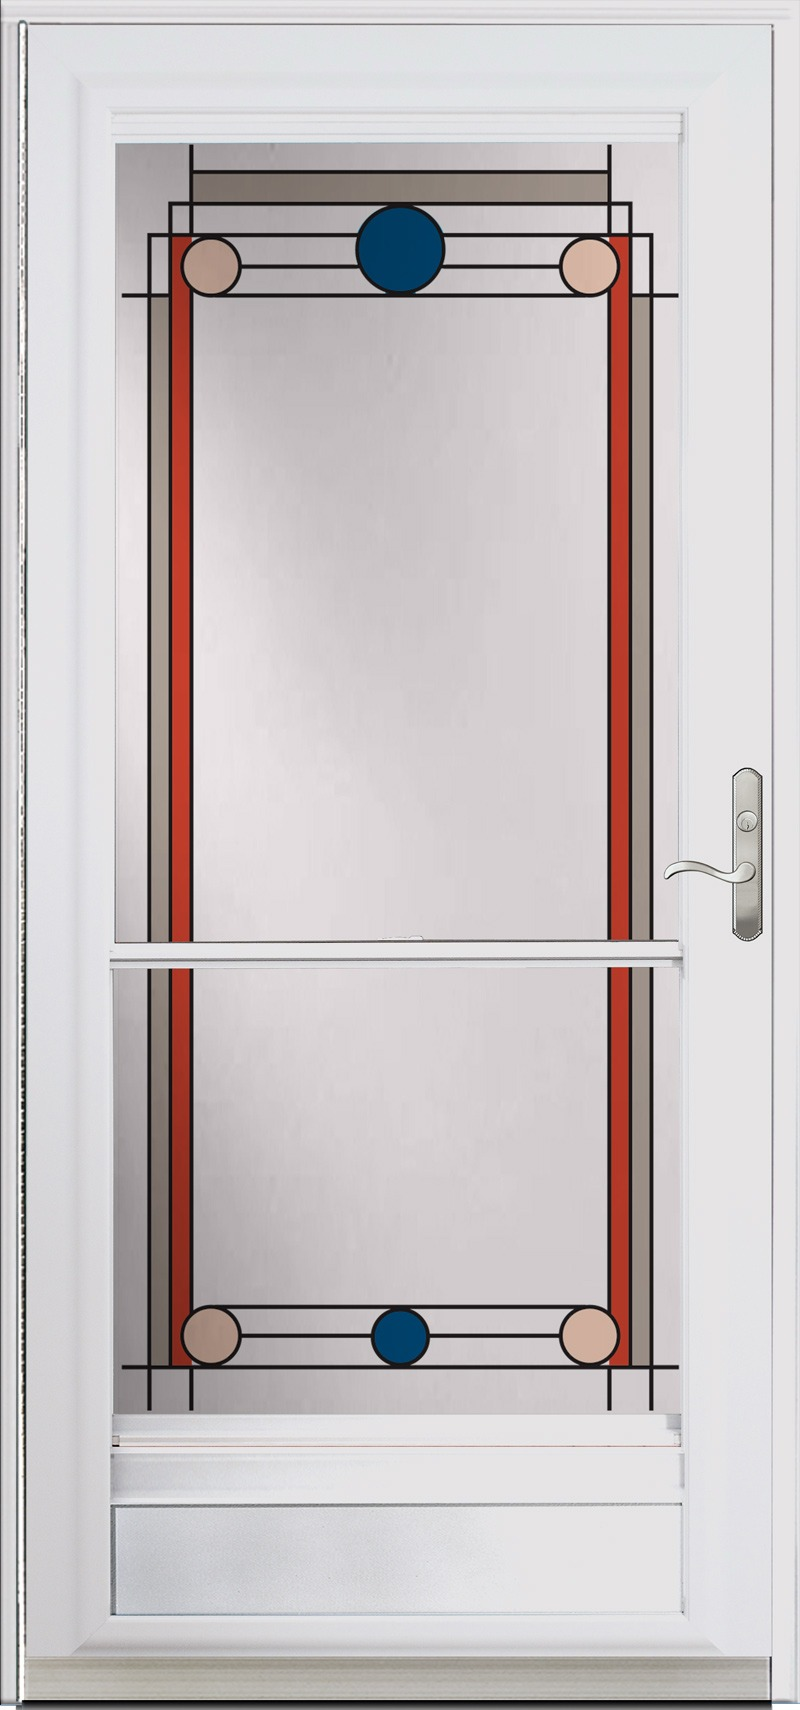 A single door with colored designs along the sides, top, and bottom